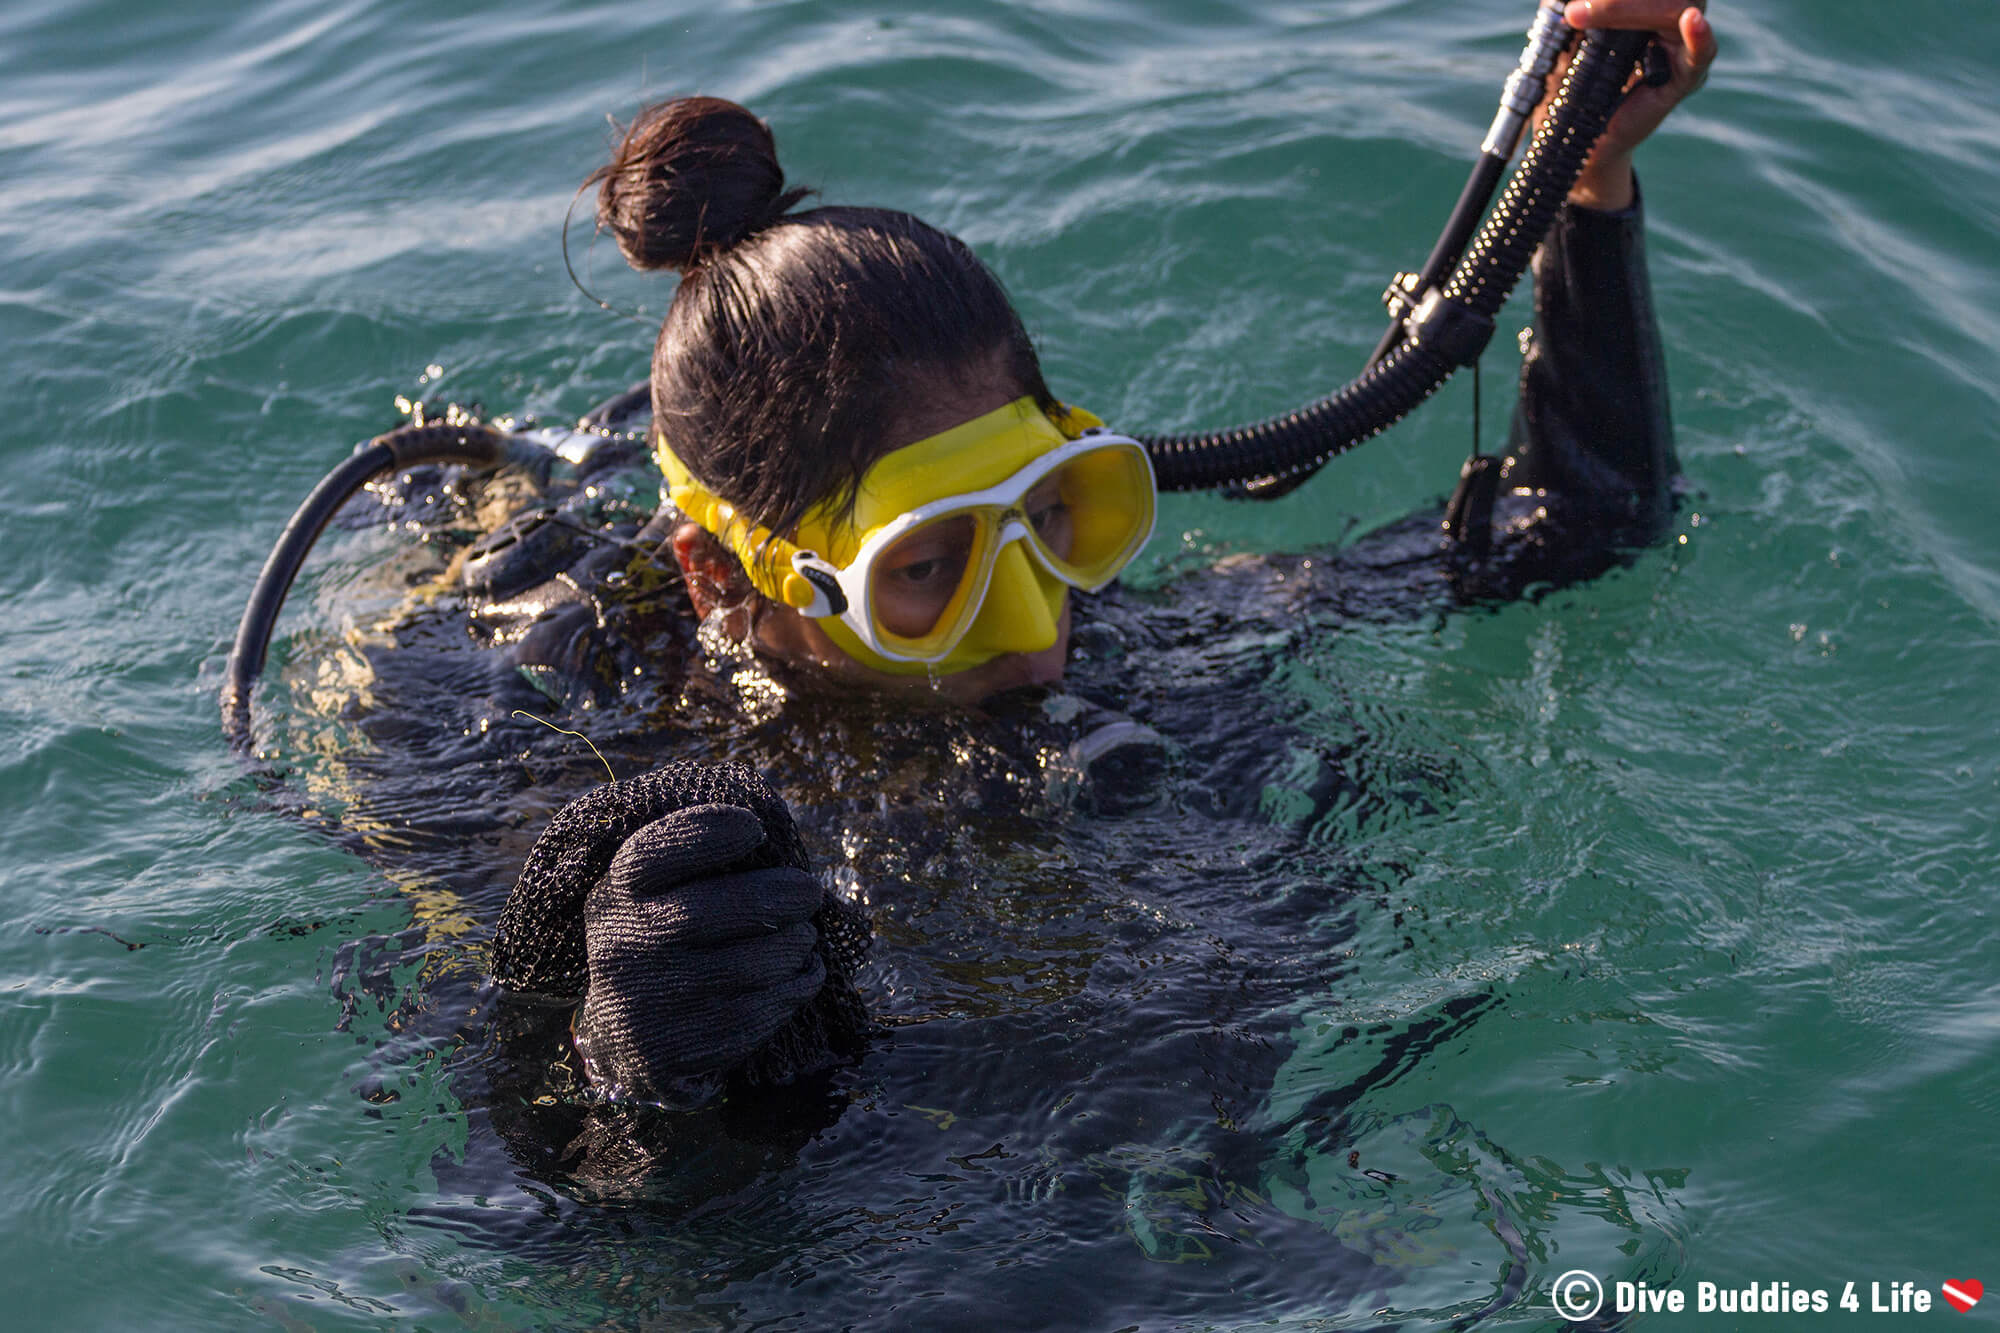 A Woman Scuba Diver Going Down To The Bottom Of Zihua Beaches To Look For Plastic, Mexico